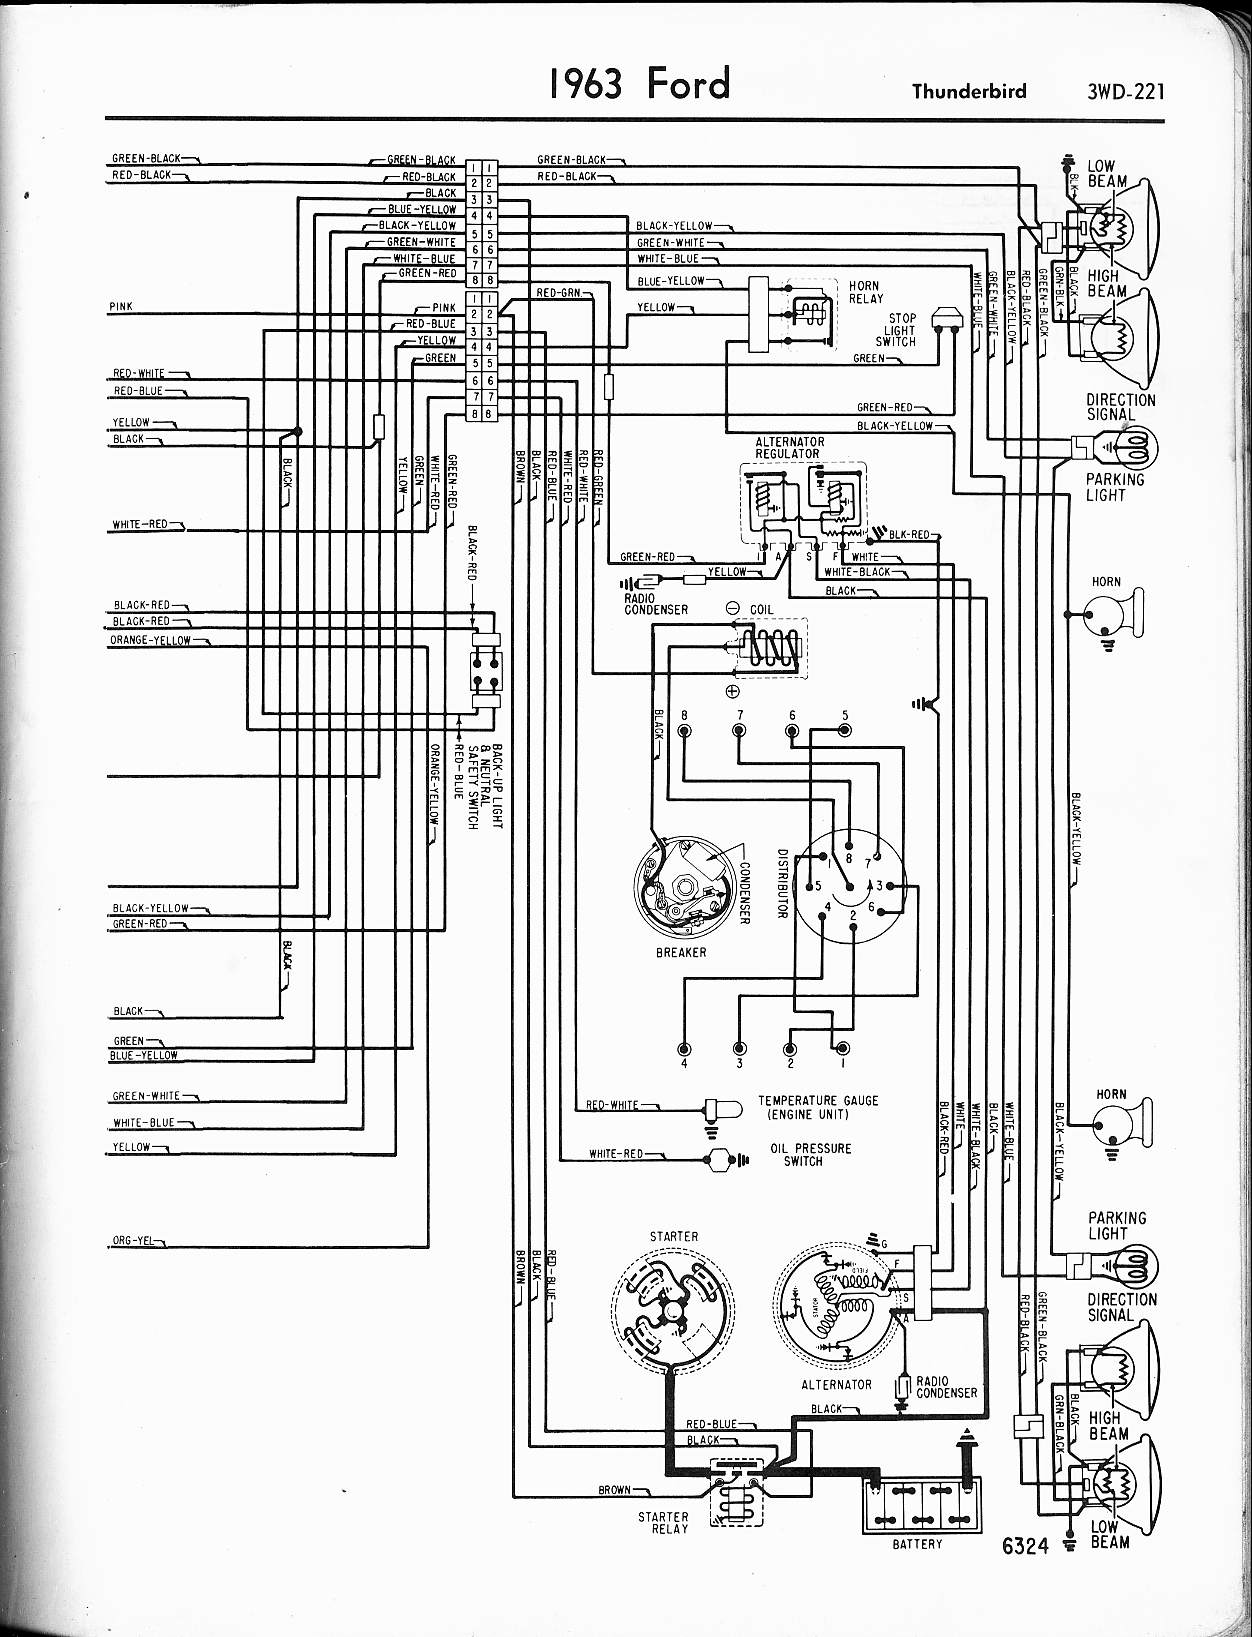 1988 Ford Wiring Diagrams Best Library Diagram For Turn Signal Flasher Thunderbird Turbo Coupe Trusted Rh 4 2 Gartenmoebel Rupp De 4l80e